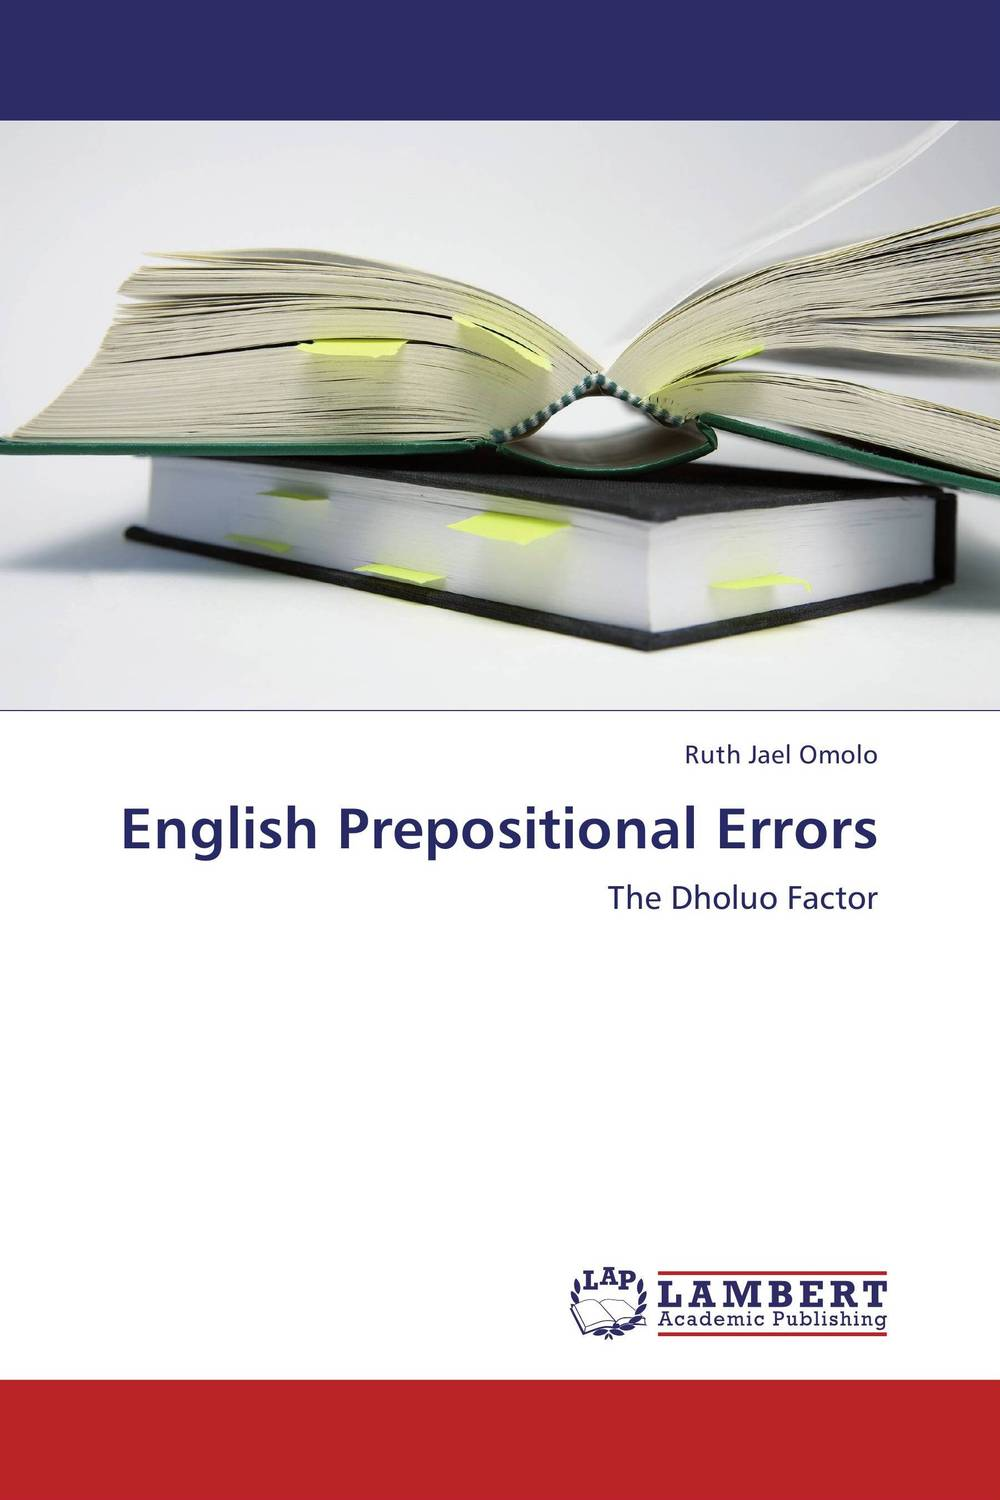 English Prepositional Errors the role of absurdity within english humour